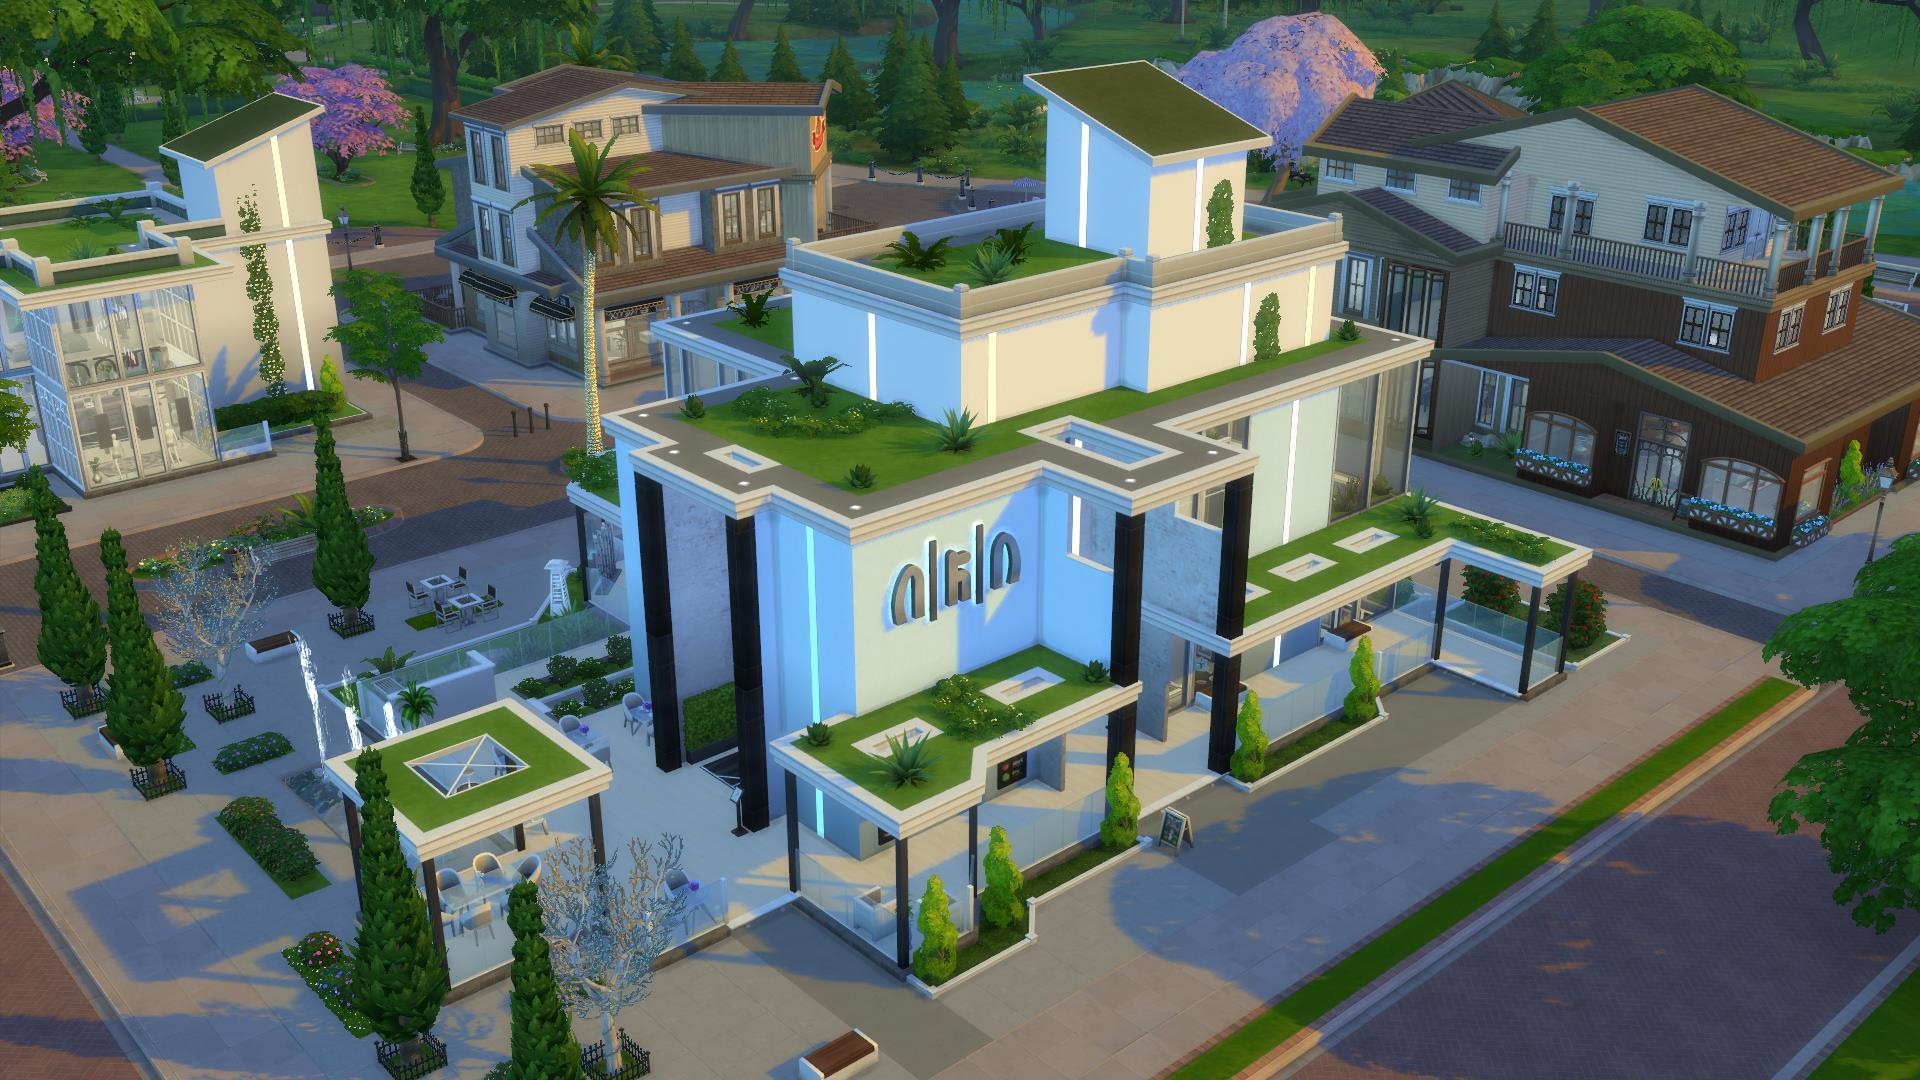 Sims 4 Restaurant Mods Best In 2020 Snootysims